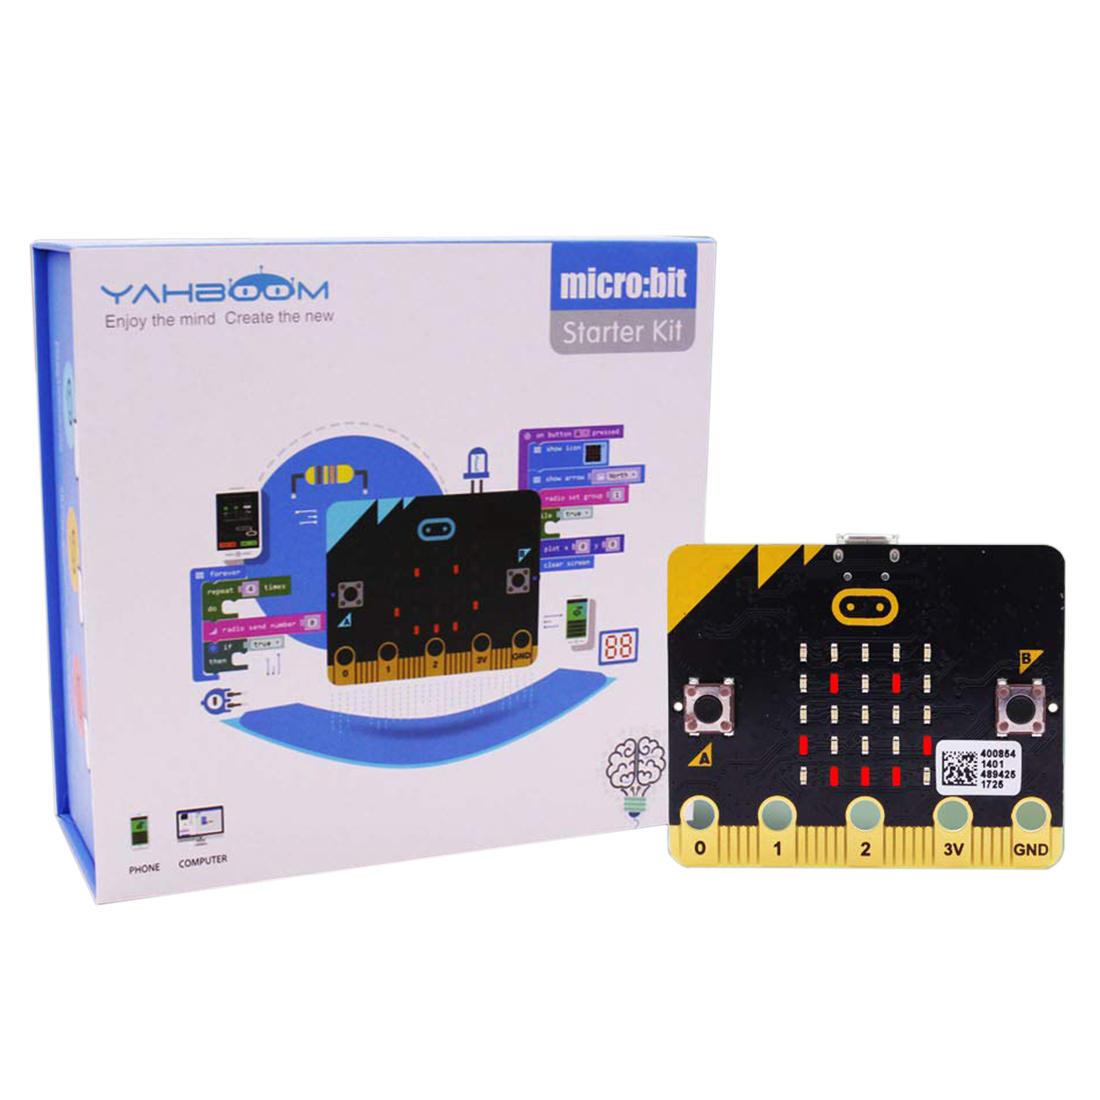 Starter Learning Kit for Micro bit Board Graphical Programmable STEM High Tech Toys for Kids( for Micro:bit Board Not Included)